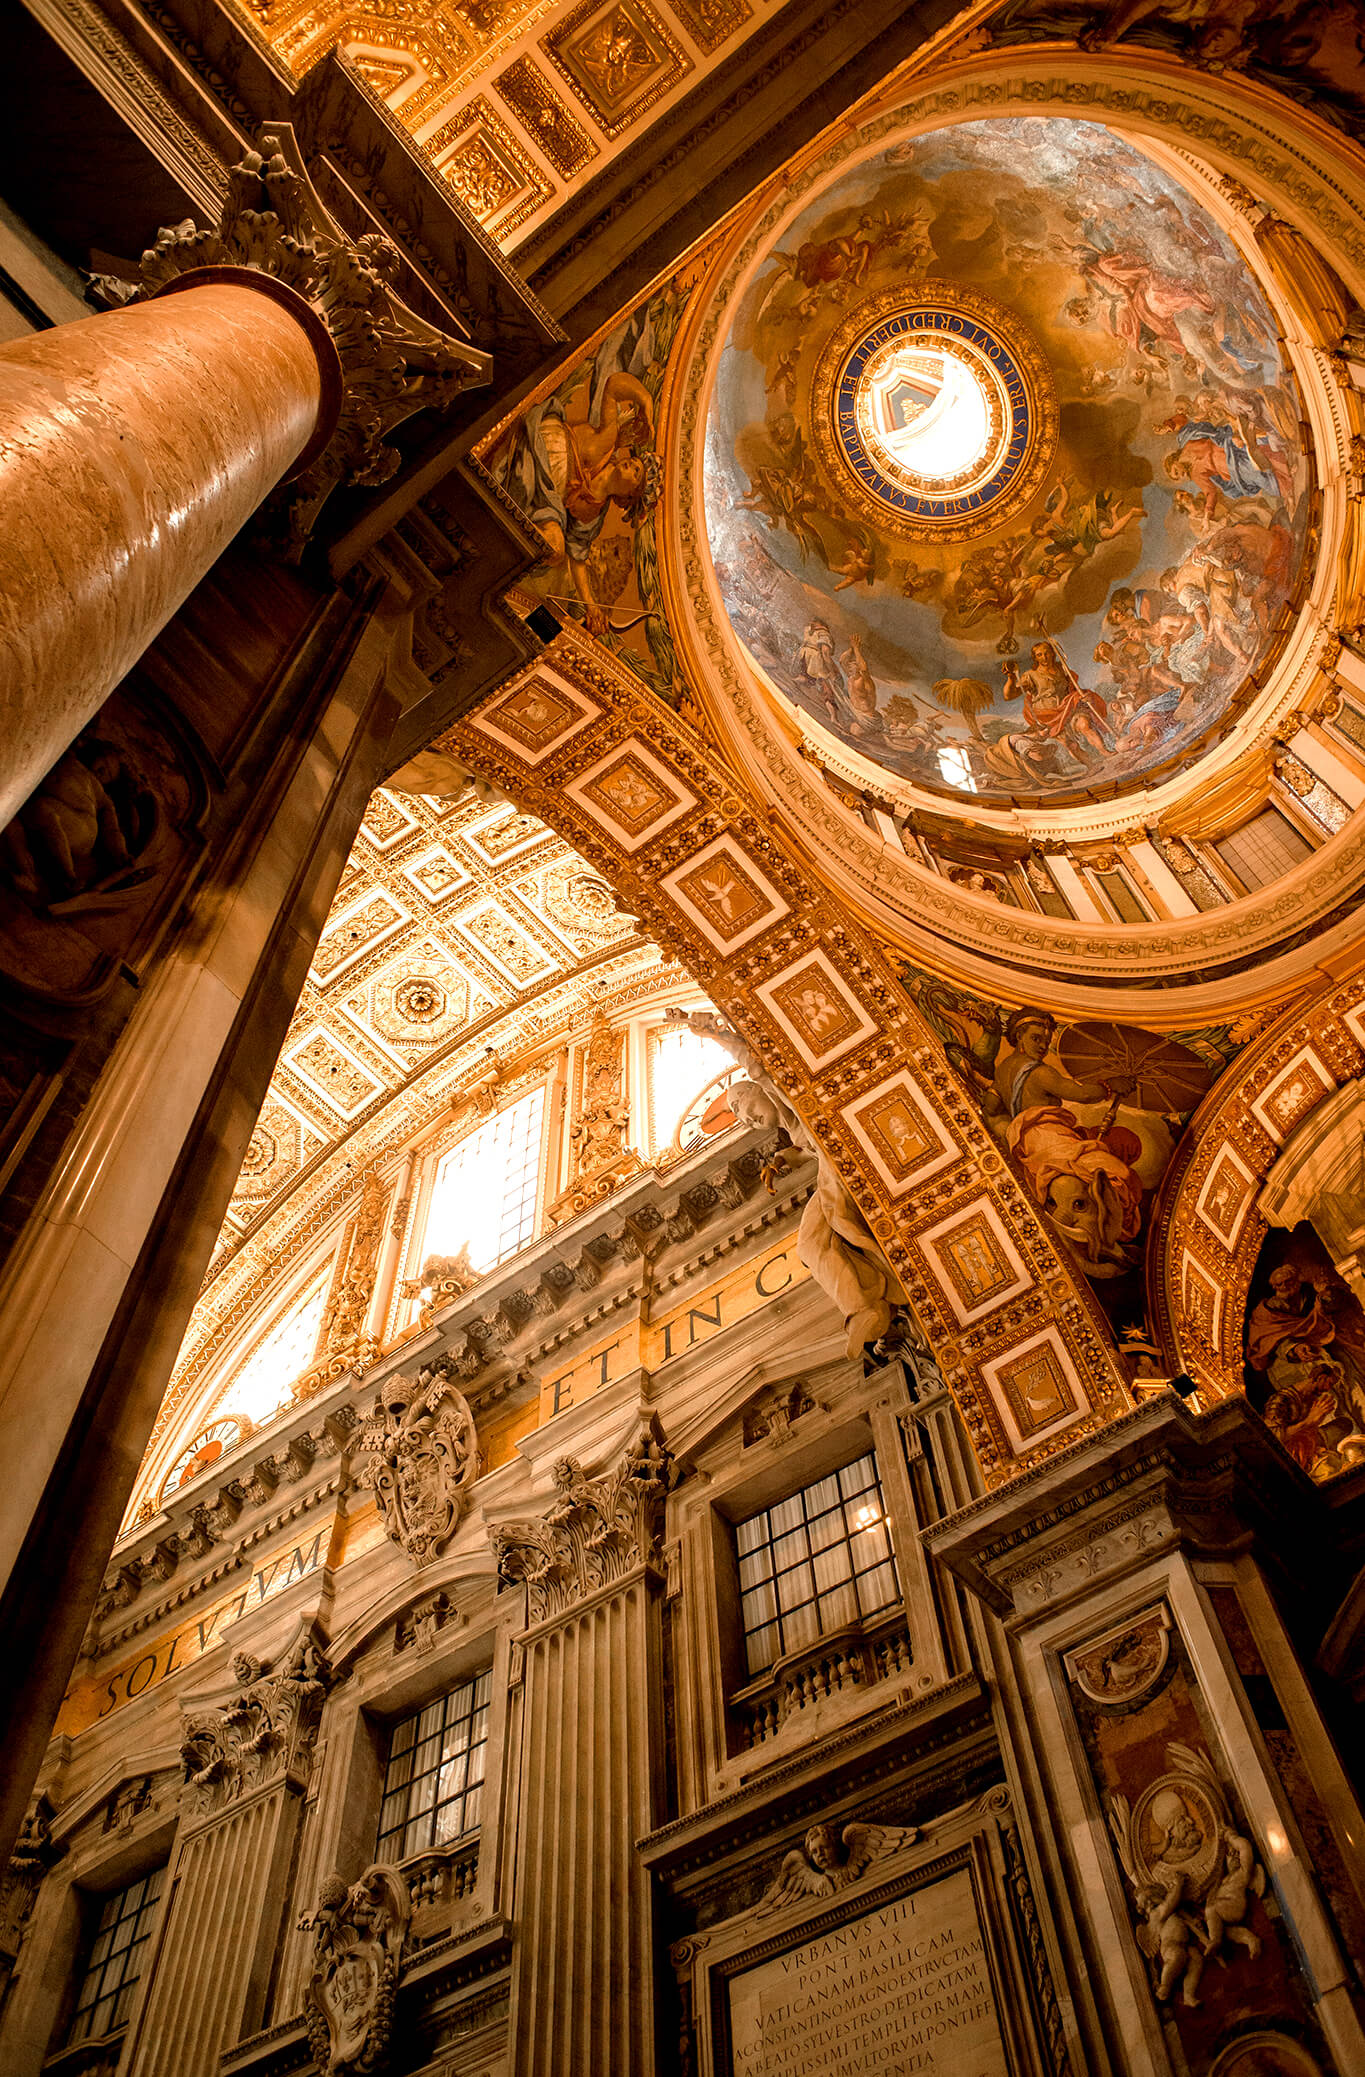 The ceiling of Saint Peter's Basilica in Venice, Italy